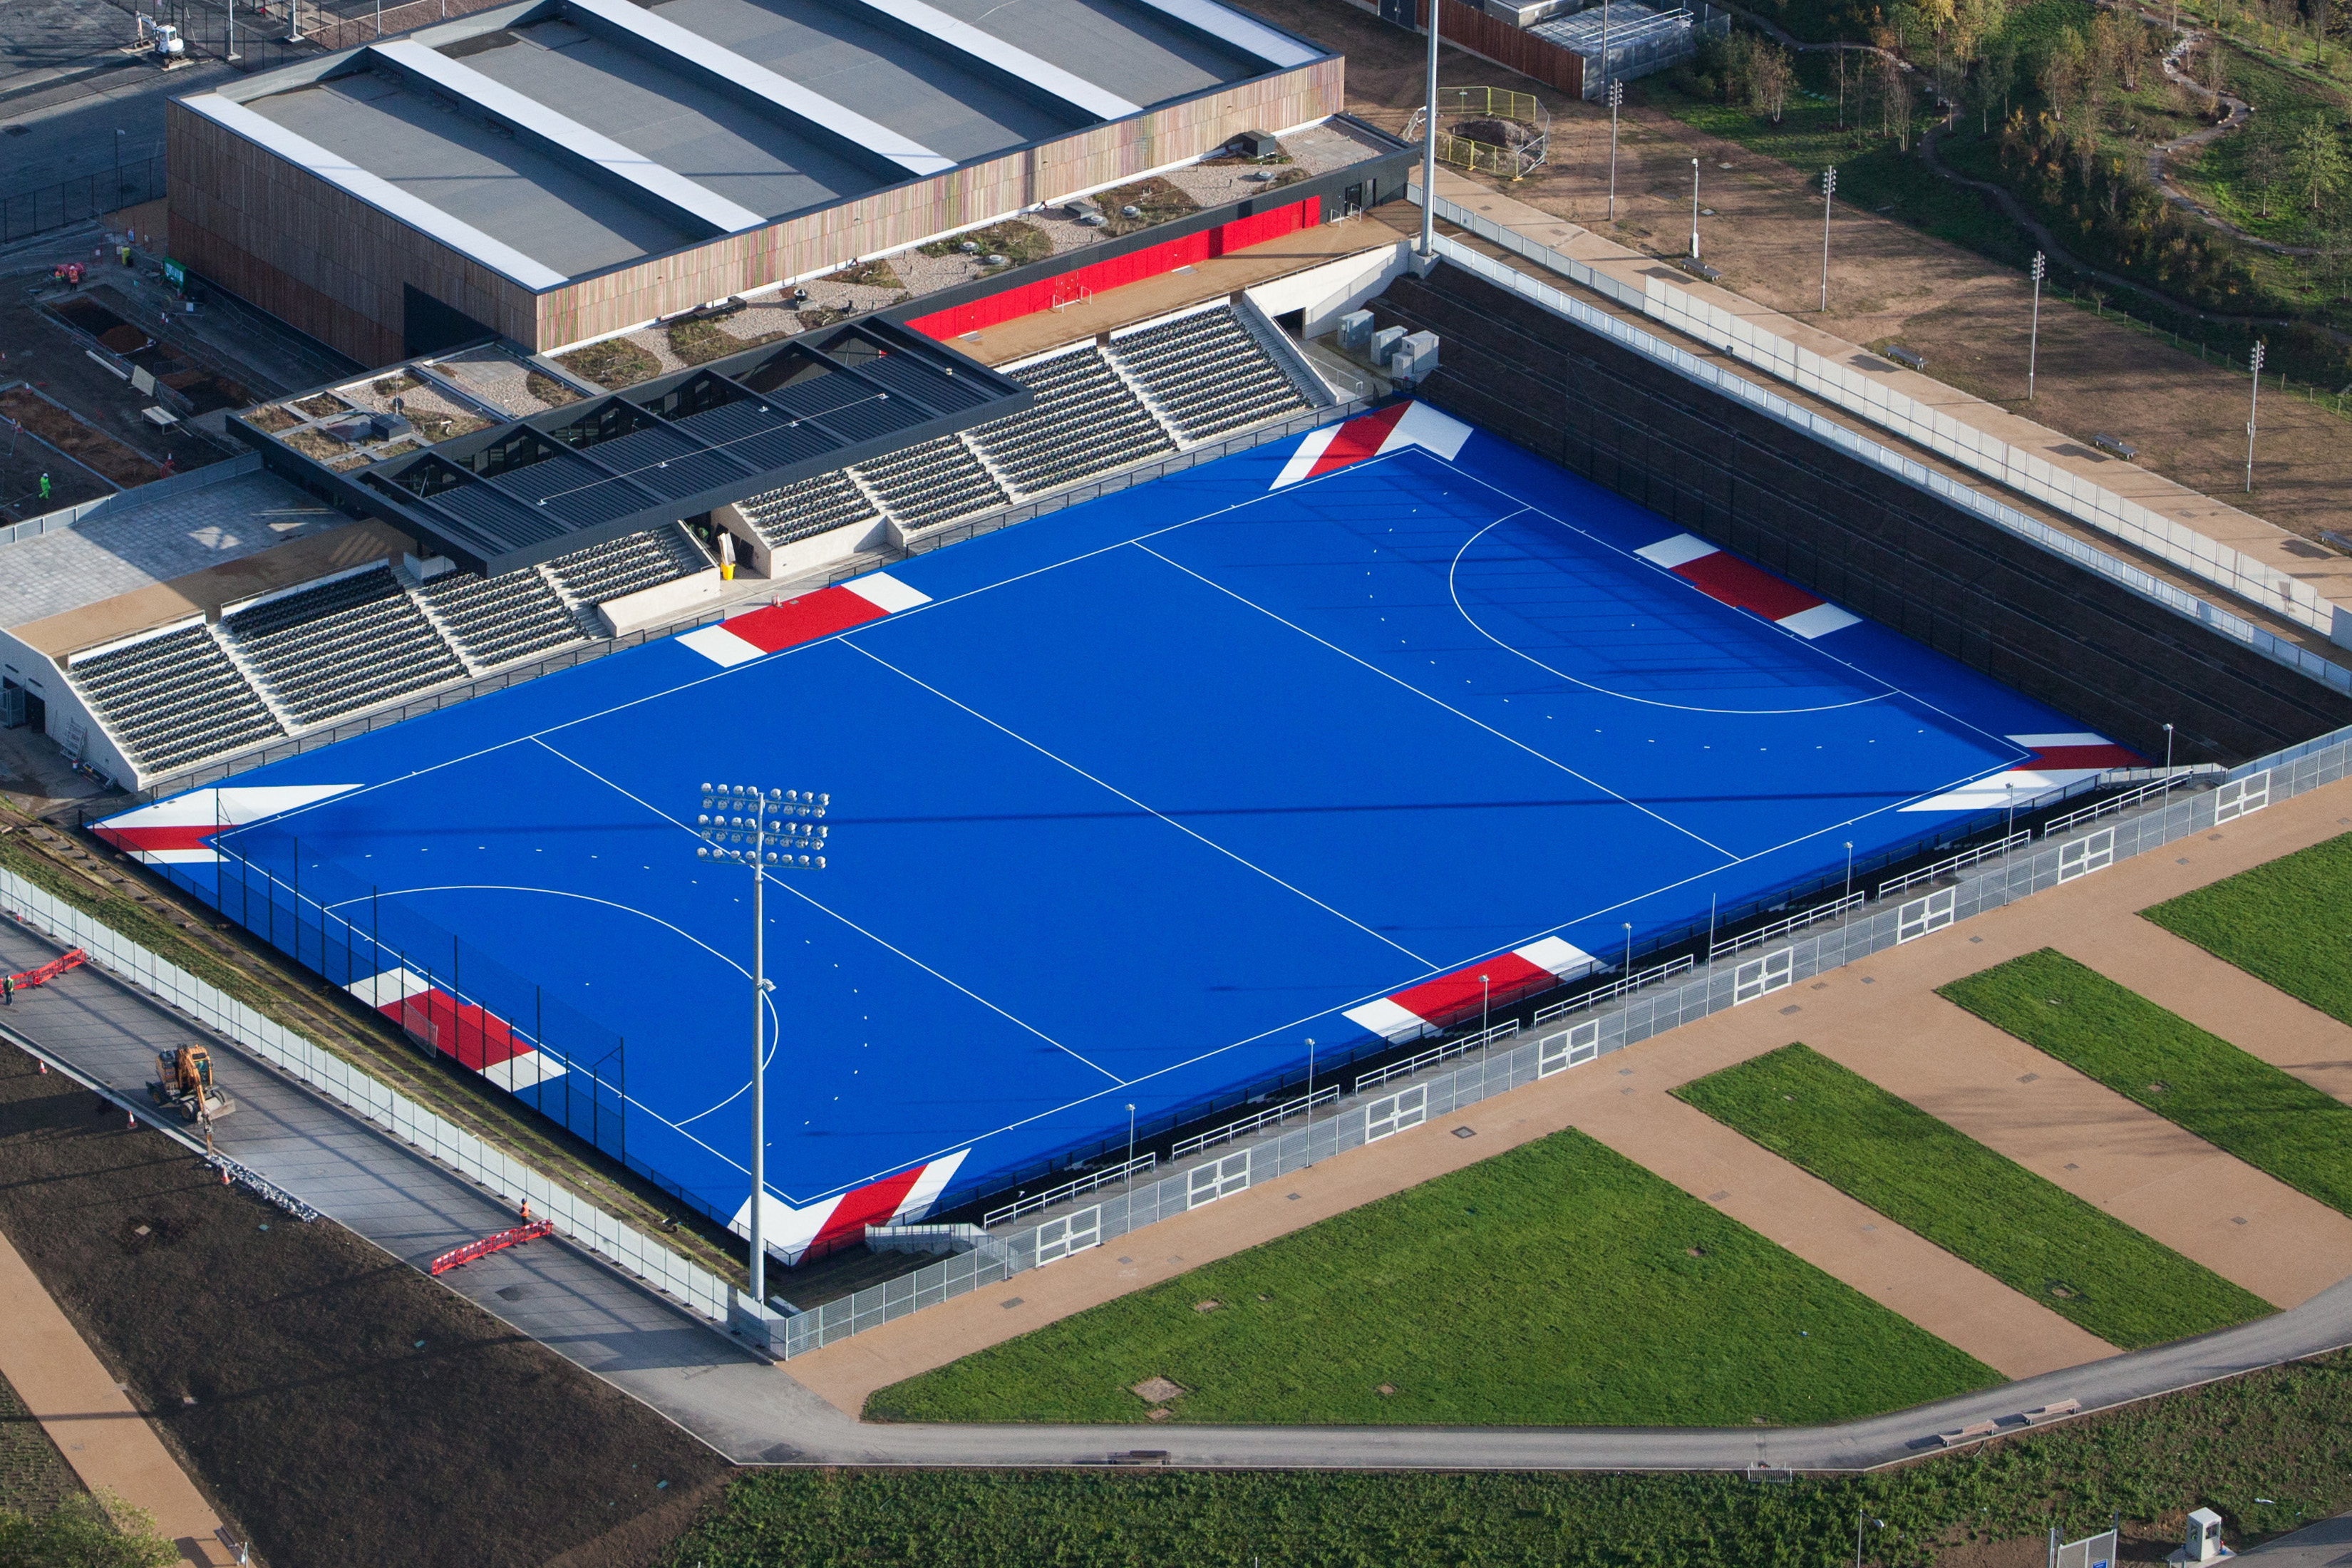 Lee Valley Hockey and Tennis Centre (LVHTC)